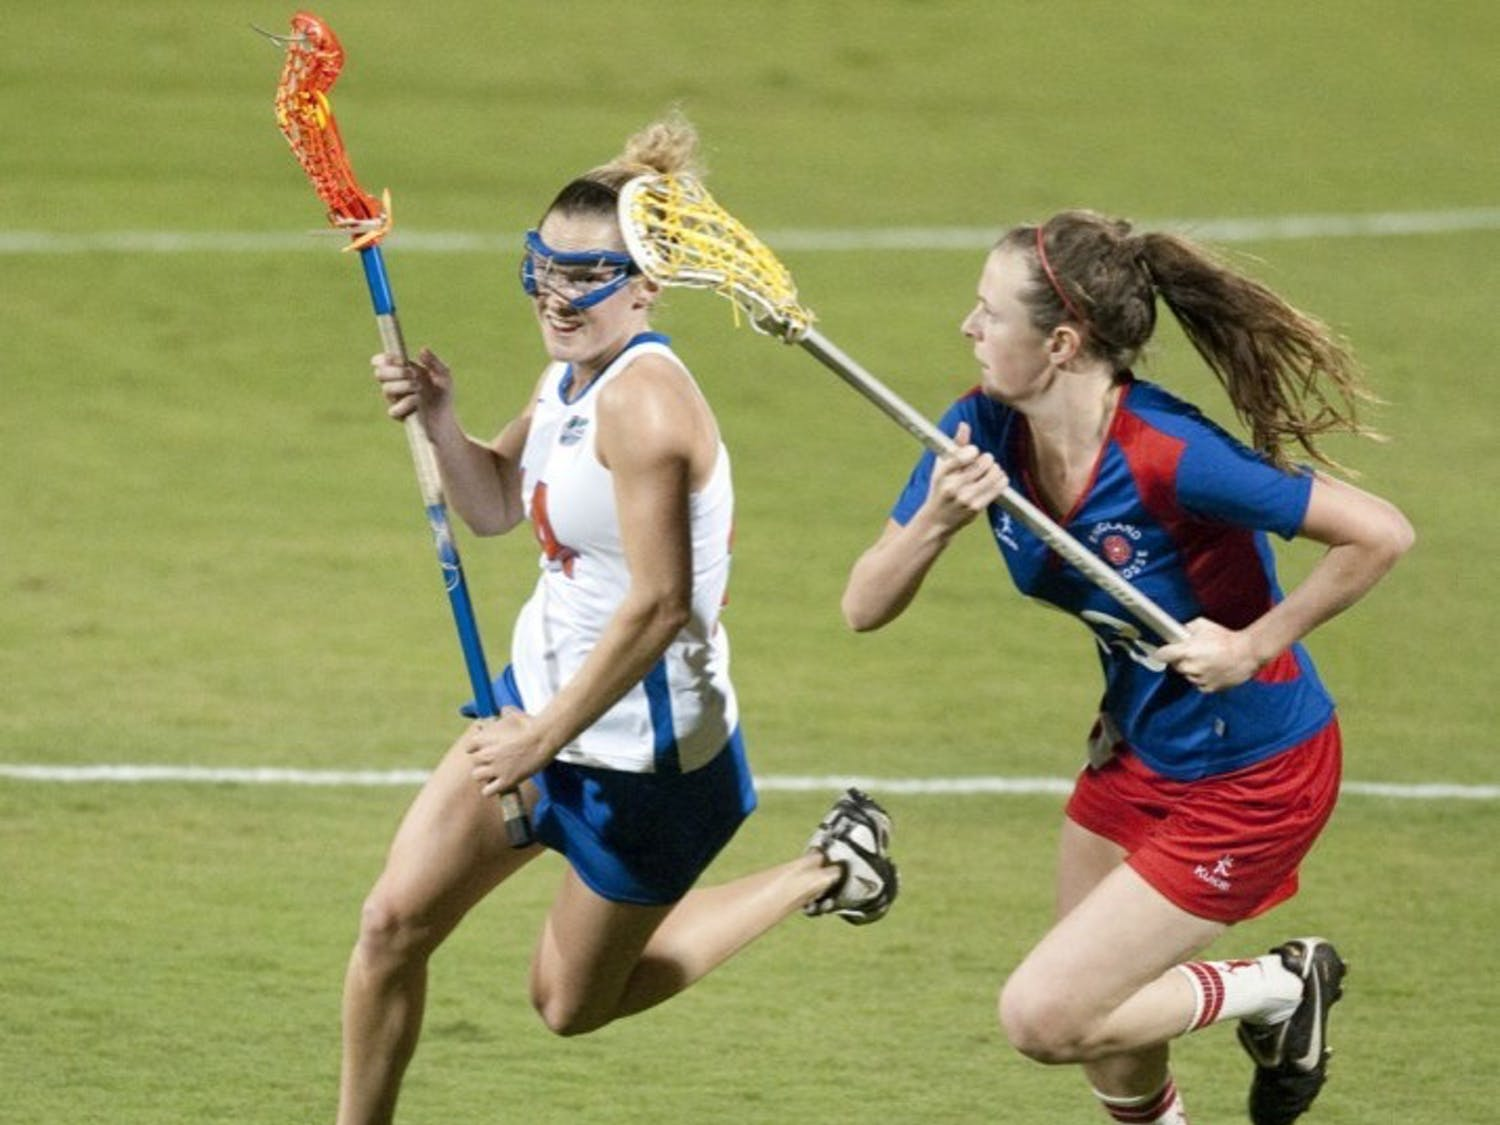 Florida freshman midfielder Nora Barry (left) scored a goal in an exhibition game against England on Jan. 26 shortly after English defender Emily Gray picked up a yellow card.